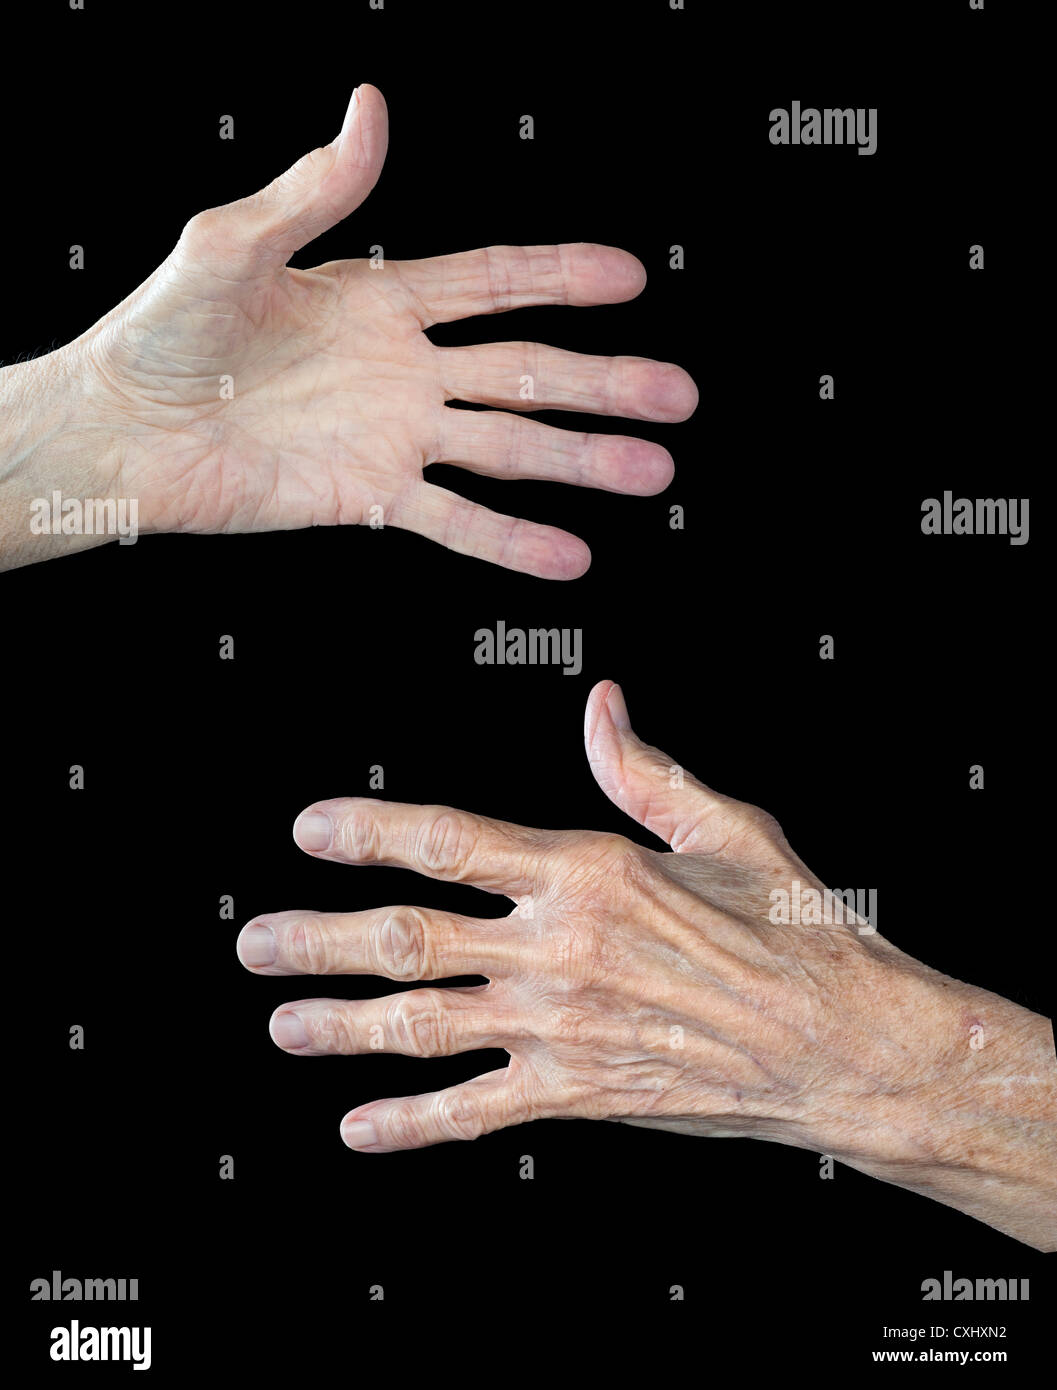 The front and back of an elderly woman's hands. The subject has arthritis and shows clear signs of aging. - Stock Image